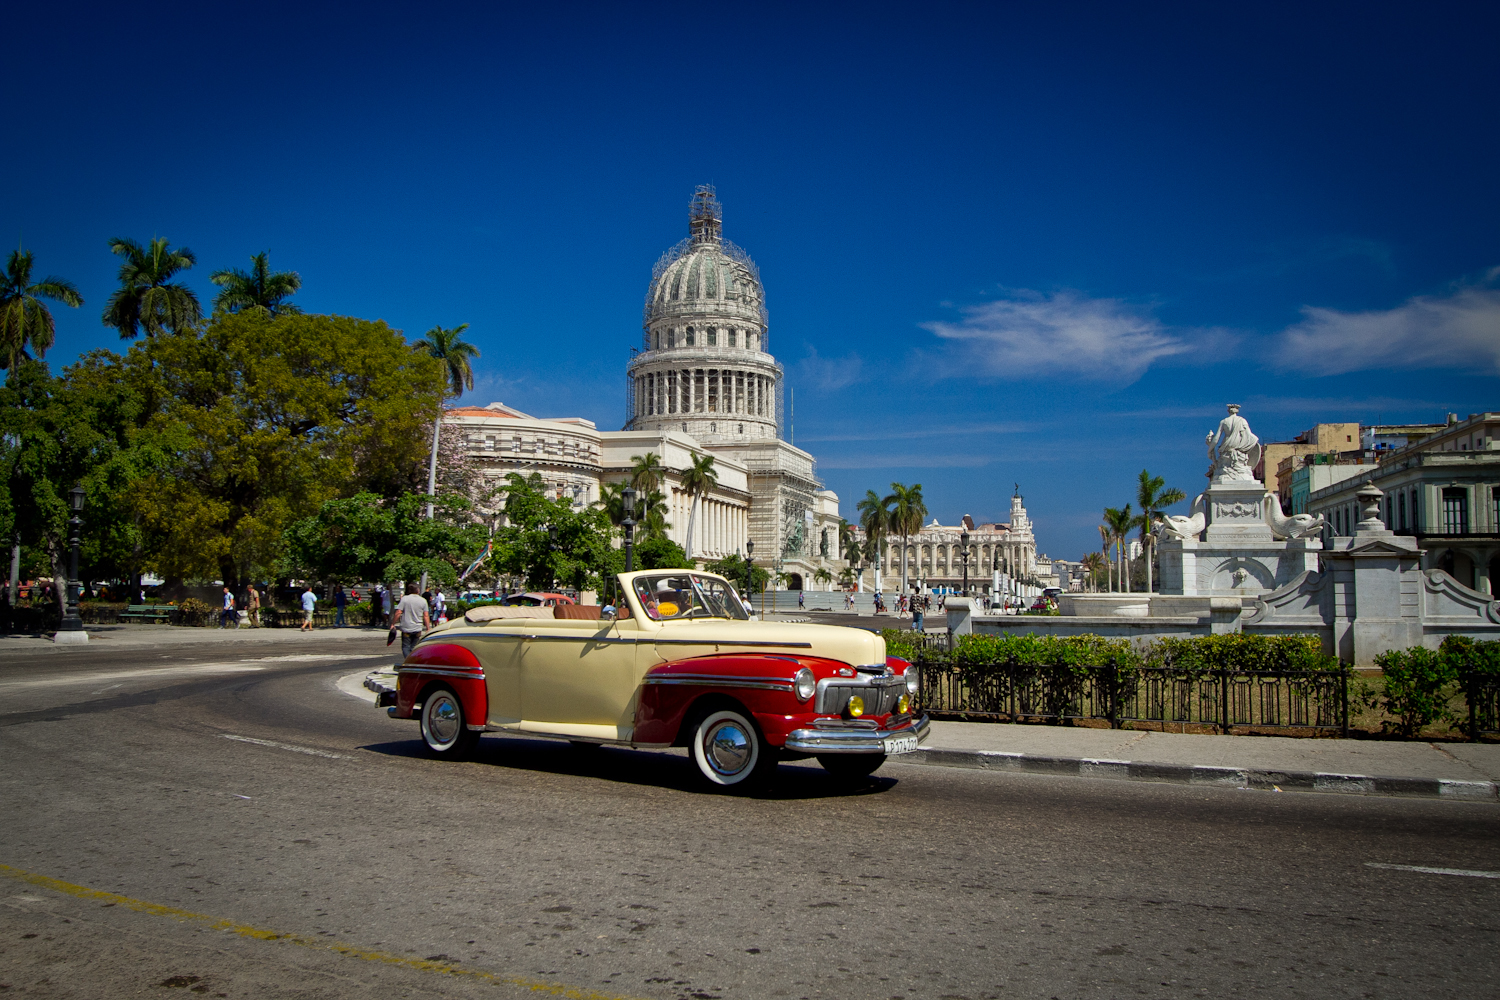 Vintage American car, with the Capitolio in the background